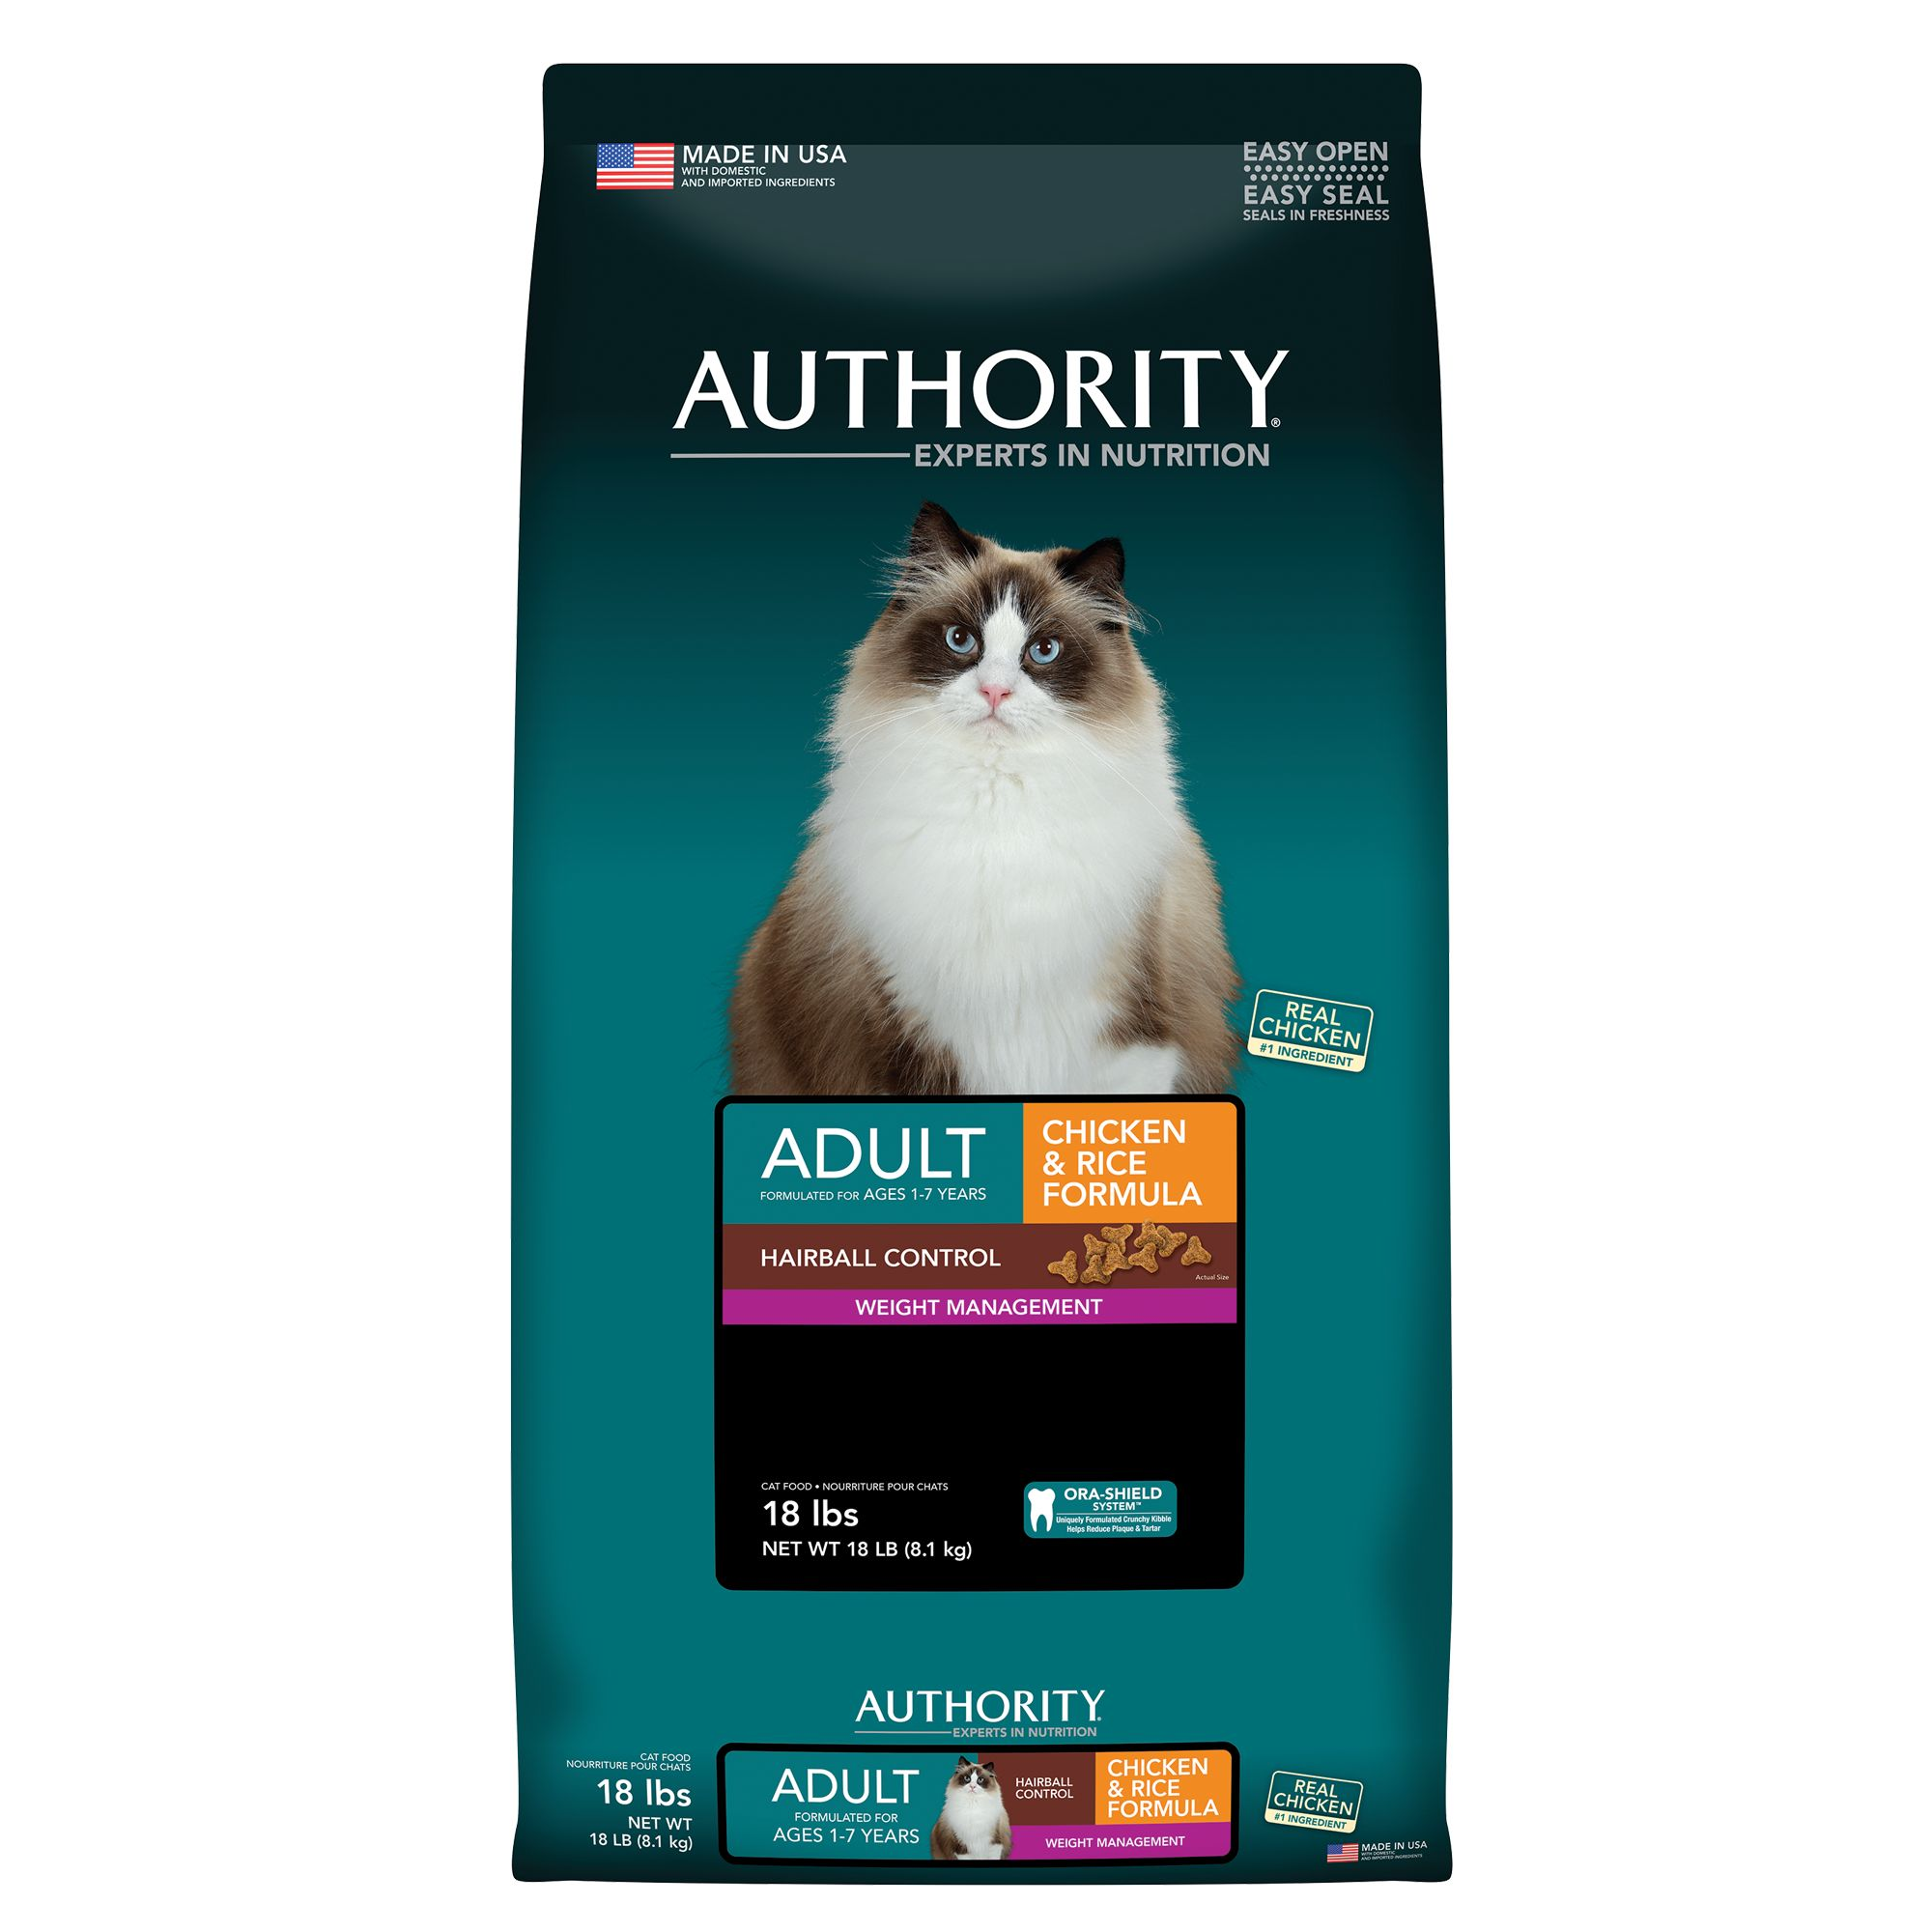 Authority Hairball Control and Weight Management Adult Cat Food size: 18 Lb, Chicken, Kibble 5220333